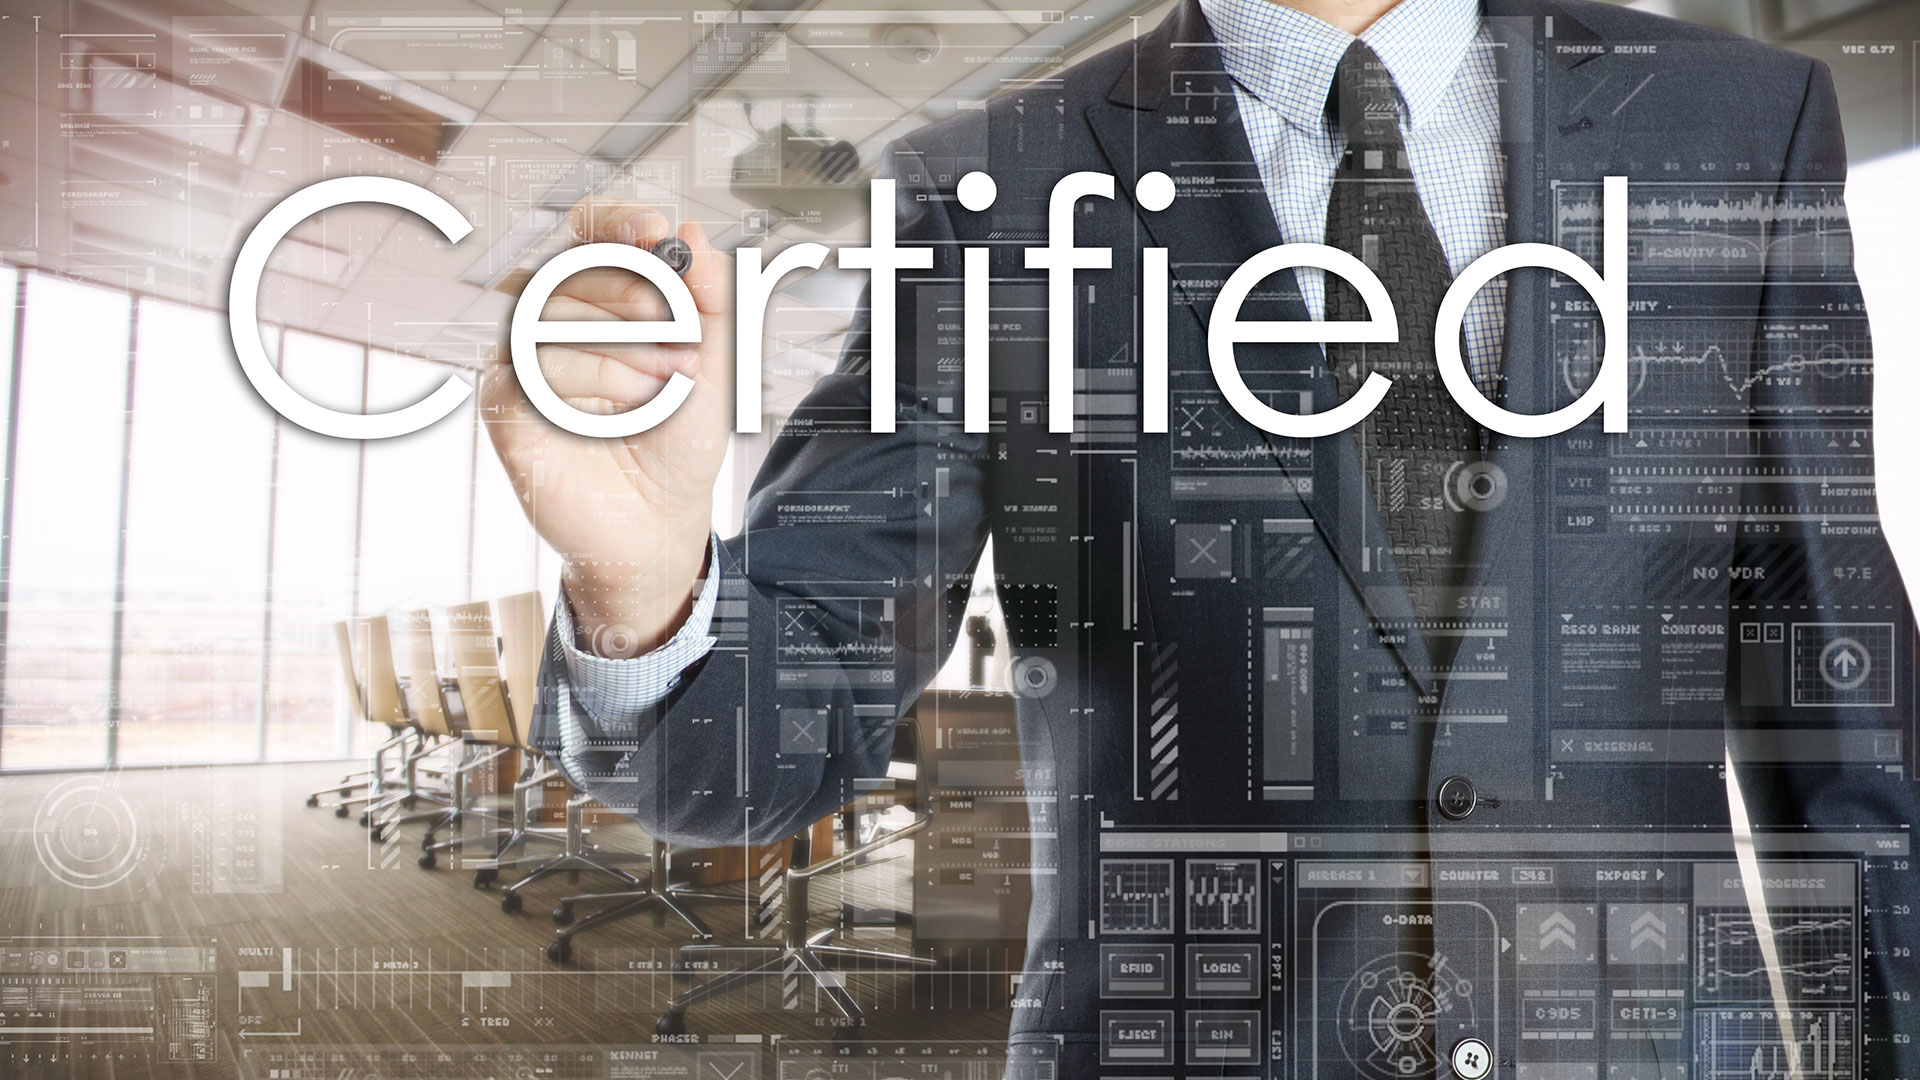 What are the perks of getting an ITIL certification?